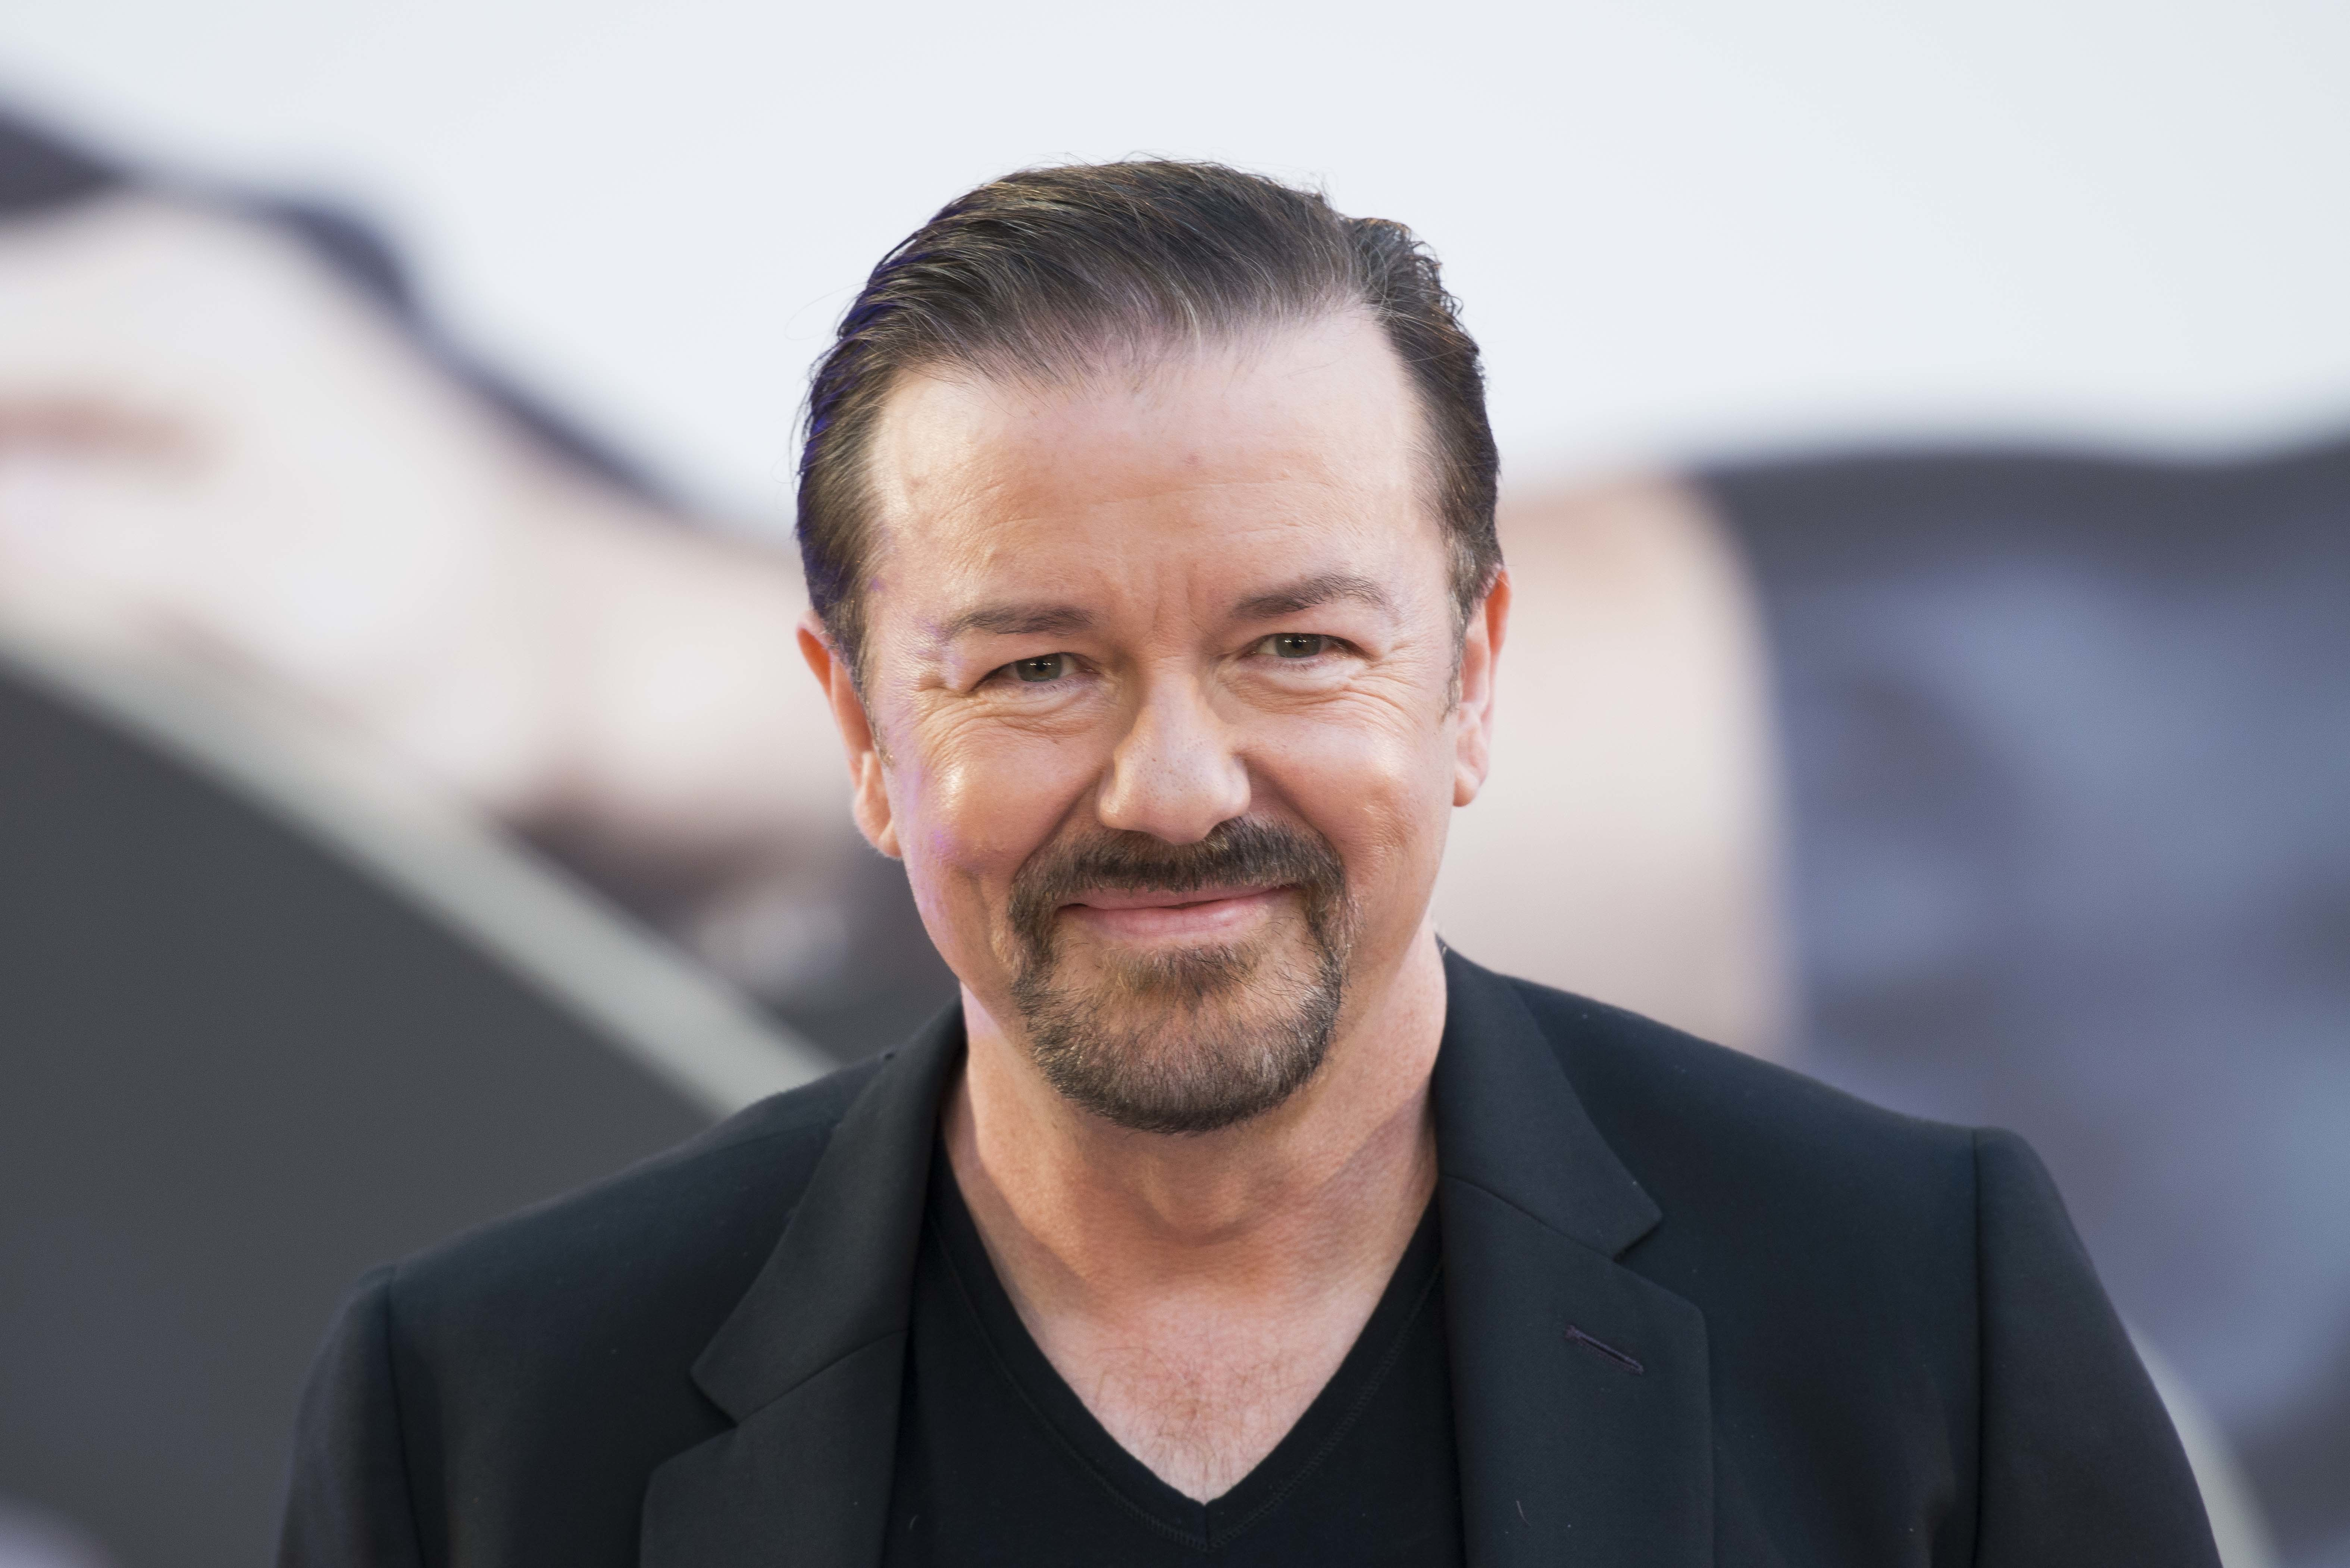 Ricky Gervais first found fame with The Office. Credit: PA